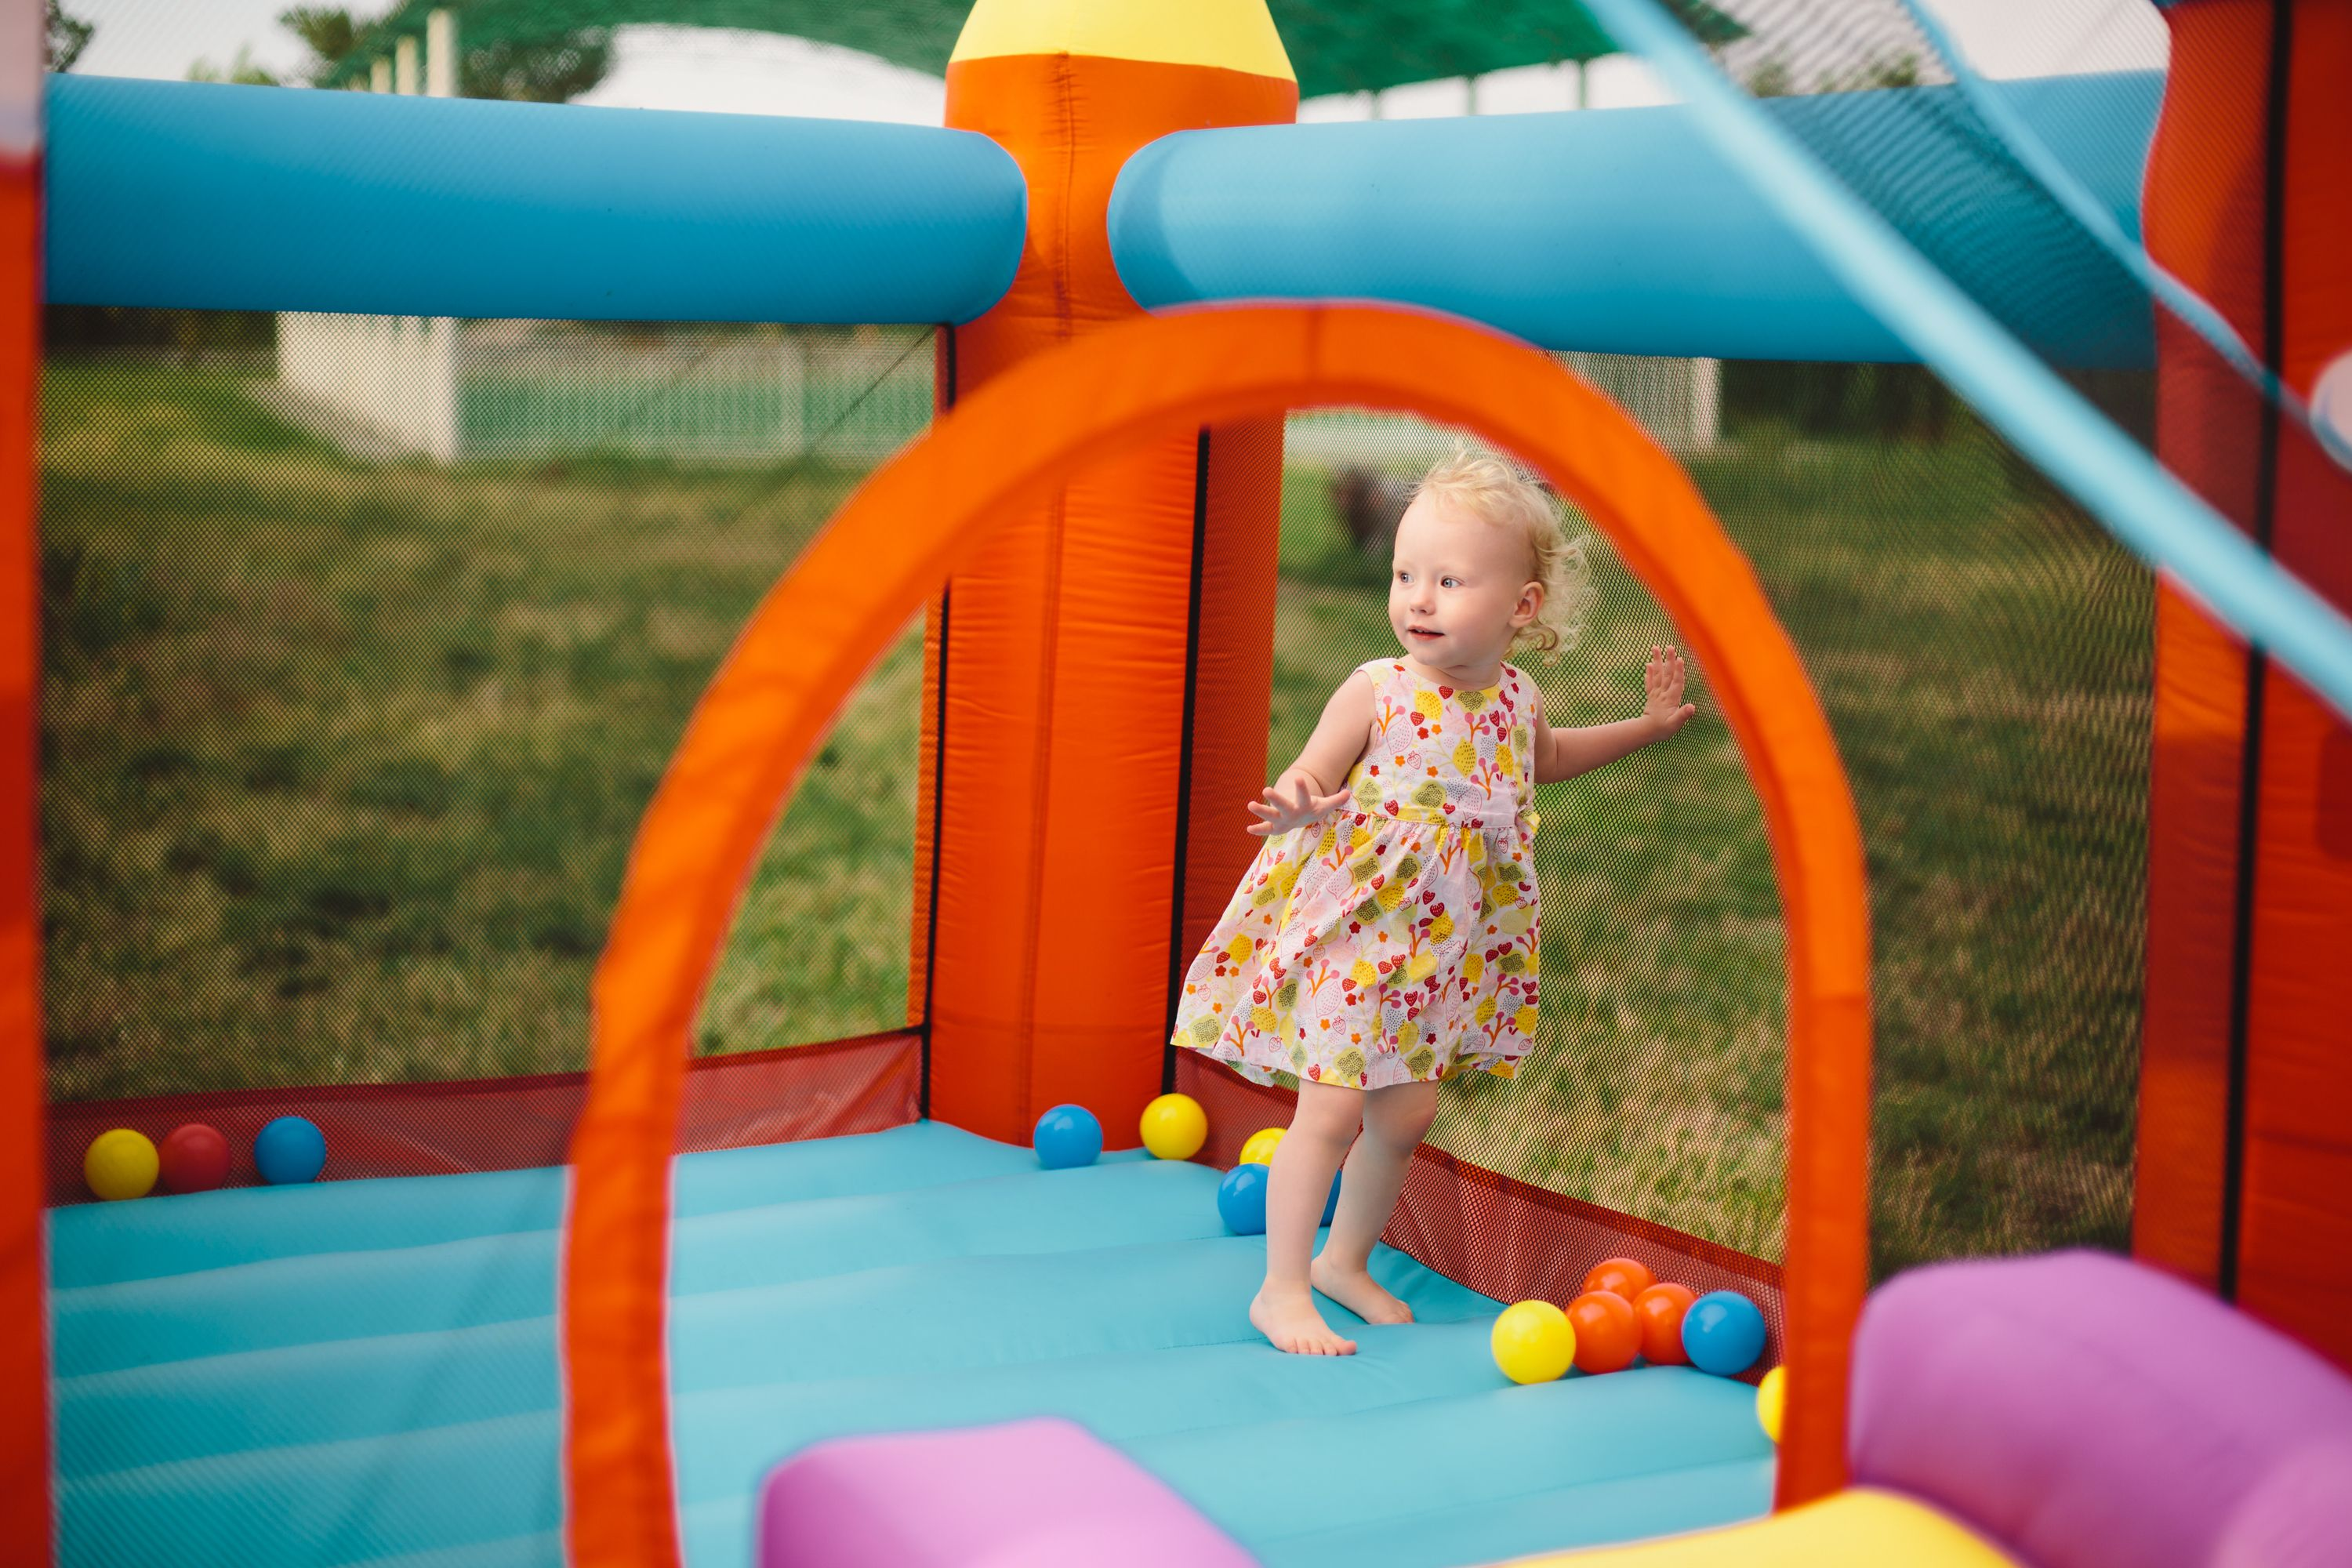 15 Bouncy House Safety Tips